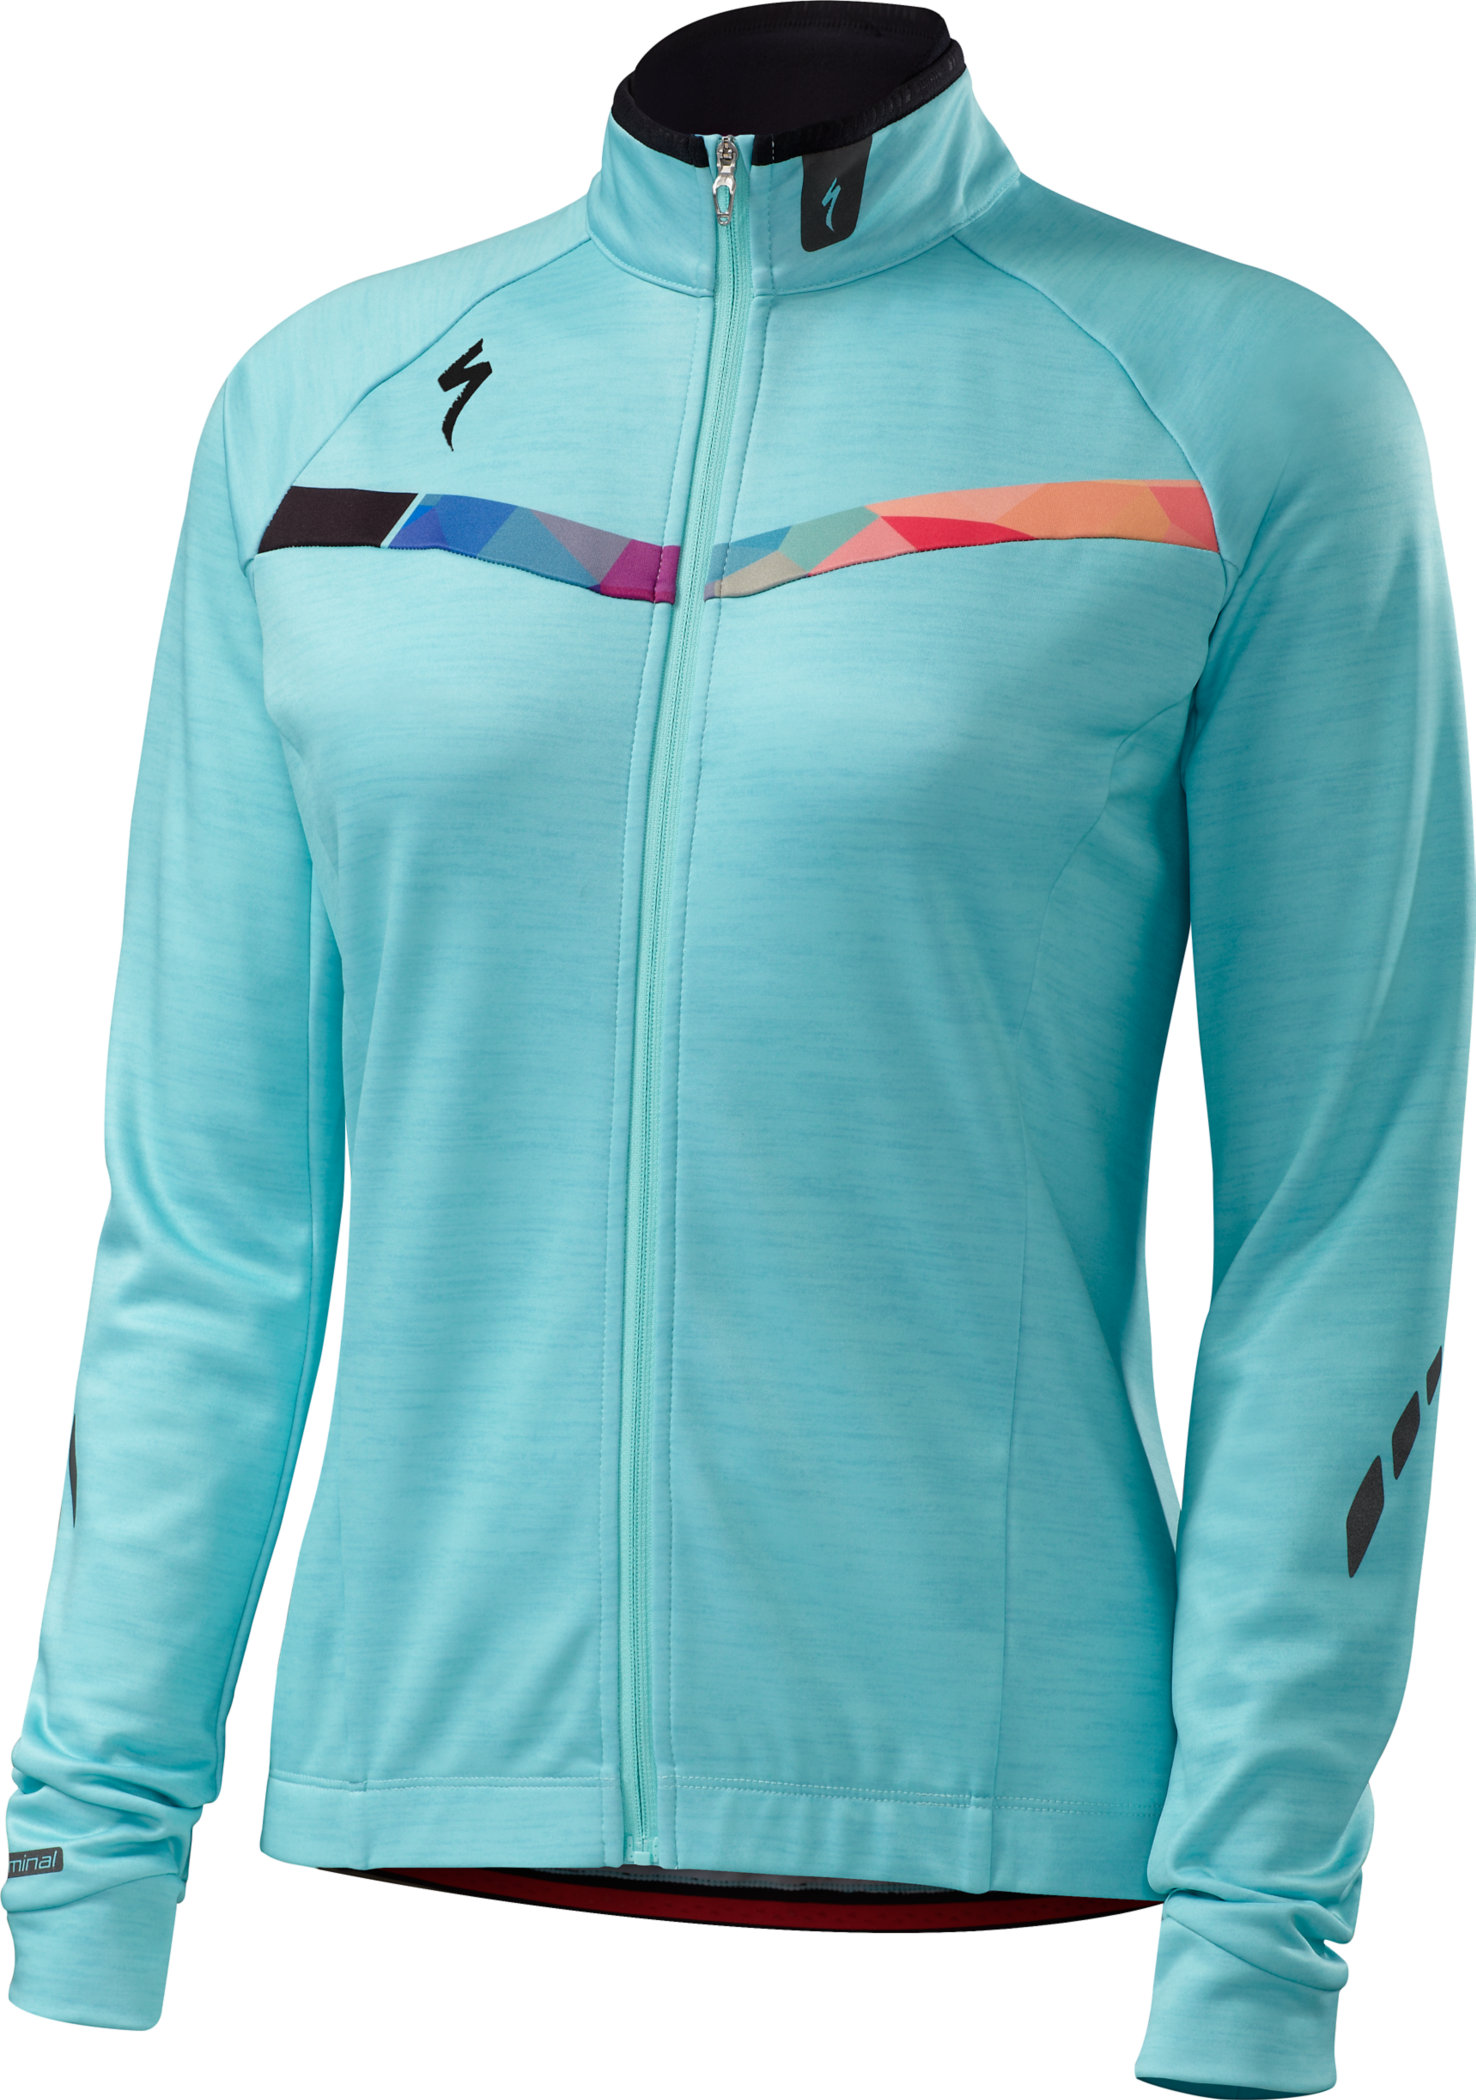 SPECIALIZED THERMINAL JERSEY LS WMN TUR/GEO FADE M - Alpha Bikes